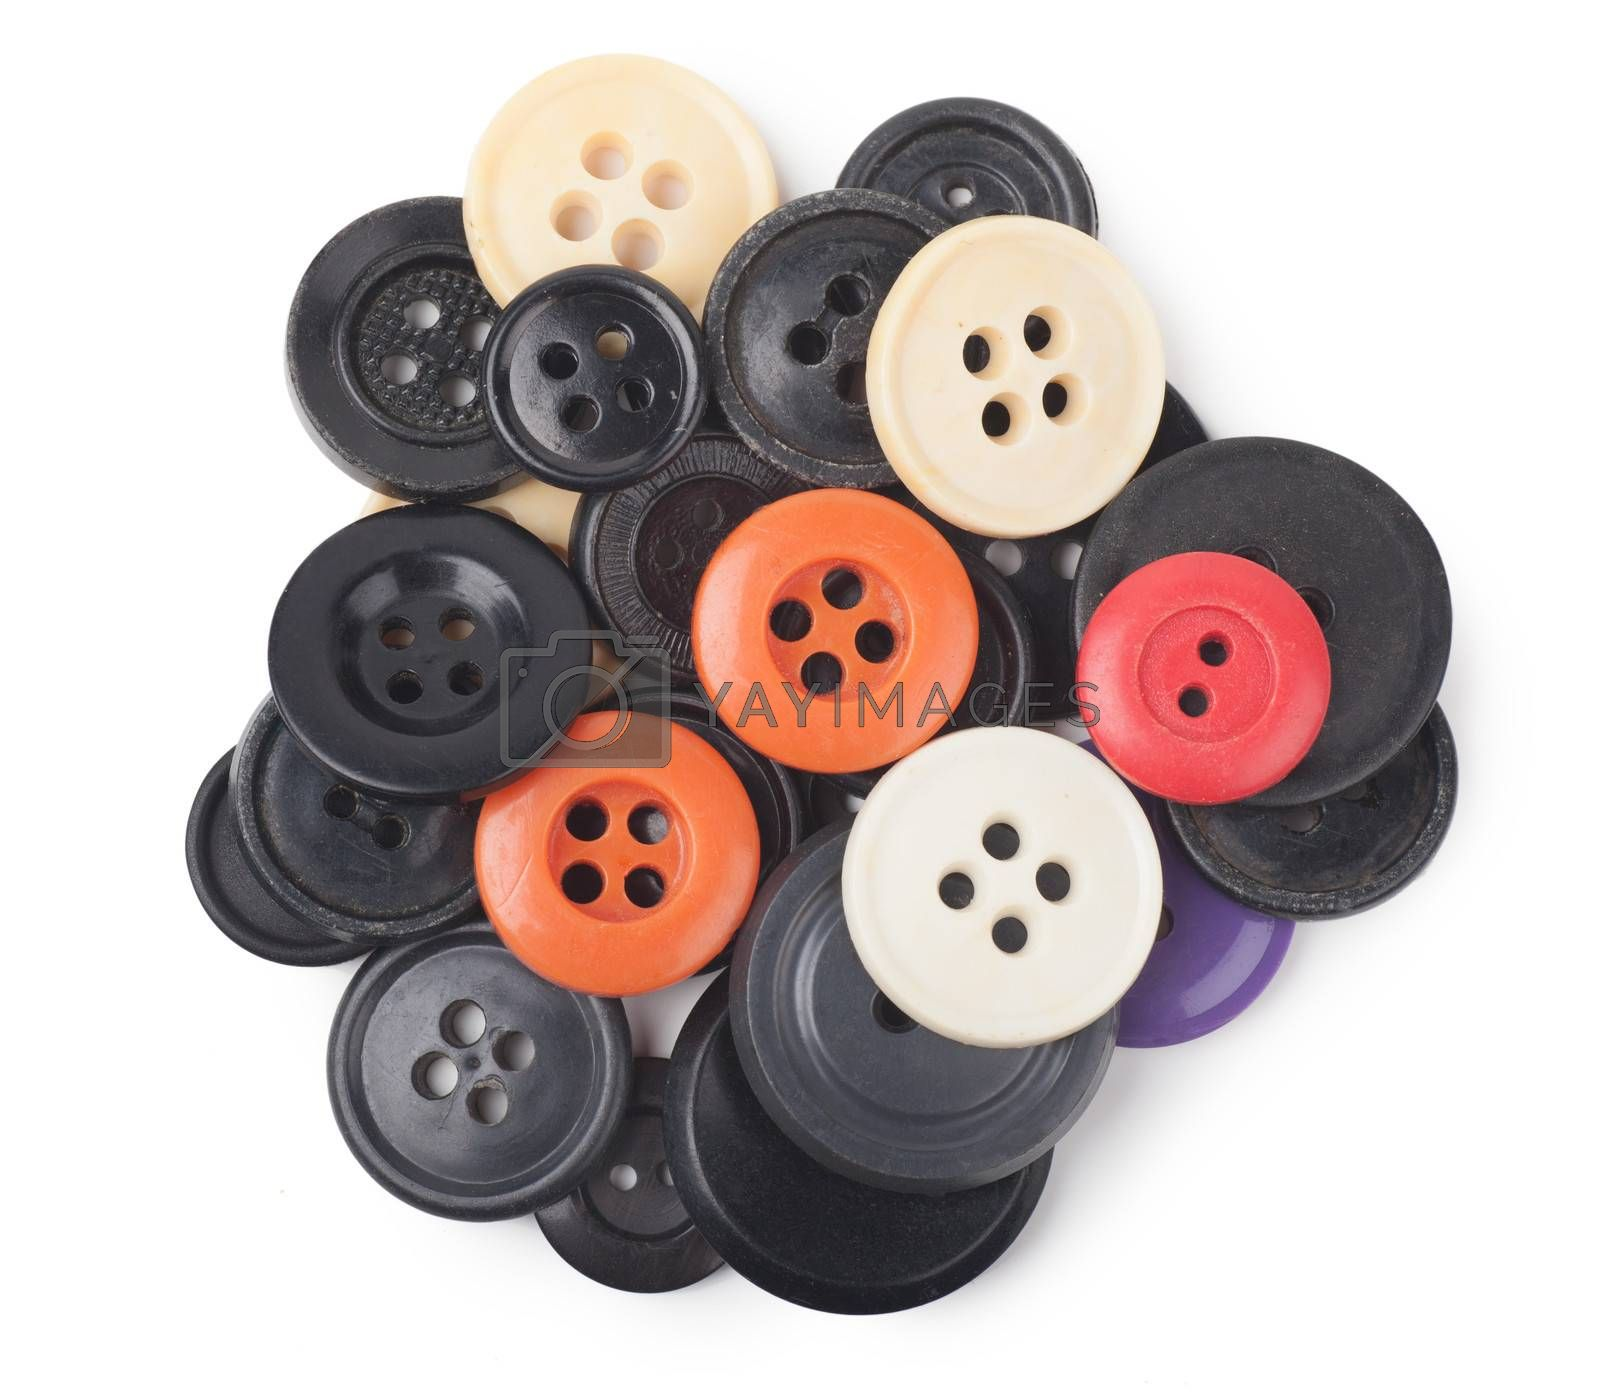 Heap of old-fashioned retro buttons over white background